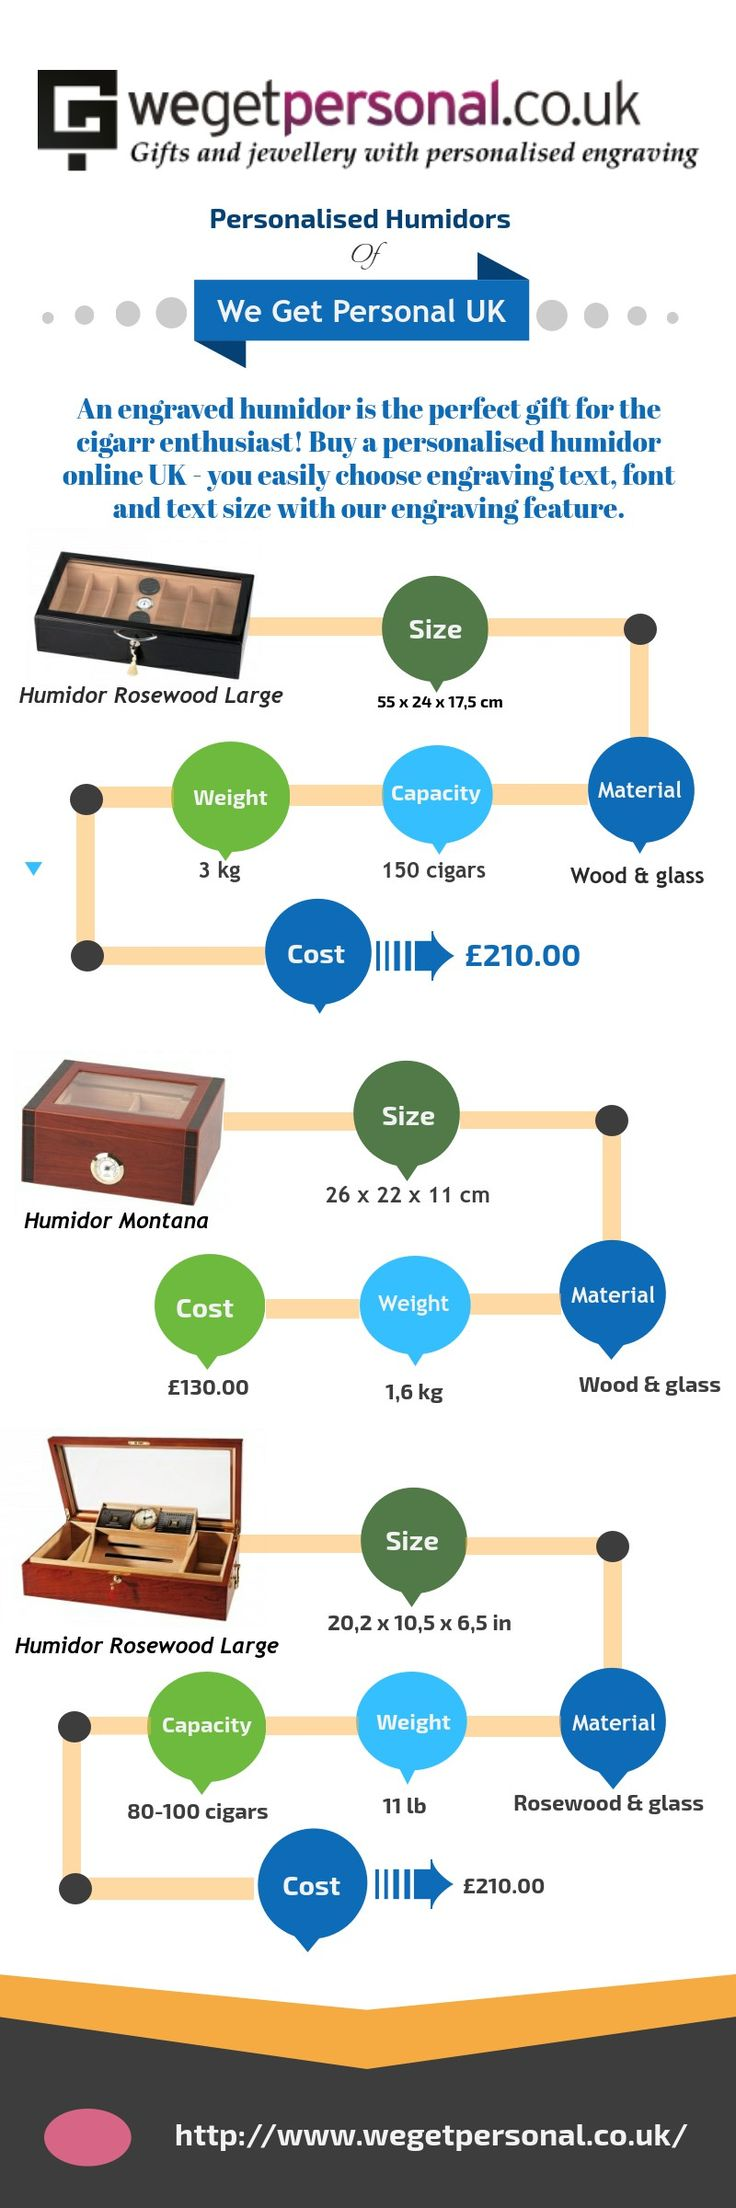 Find out personalised Humidor at We Get Personal UK. You can easily choose engraving text, font and text size with our engraving feature. Every Personalised Humidor has different type of size, material, capacity and weight. Free shipping & quick delivery! #personalisedhumidor #engravedhumidor #humidor #humidifier #WeGetPersonalUK